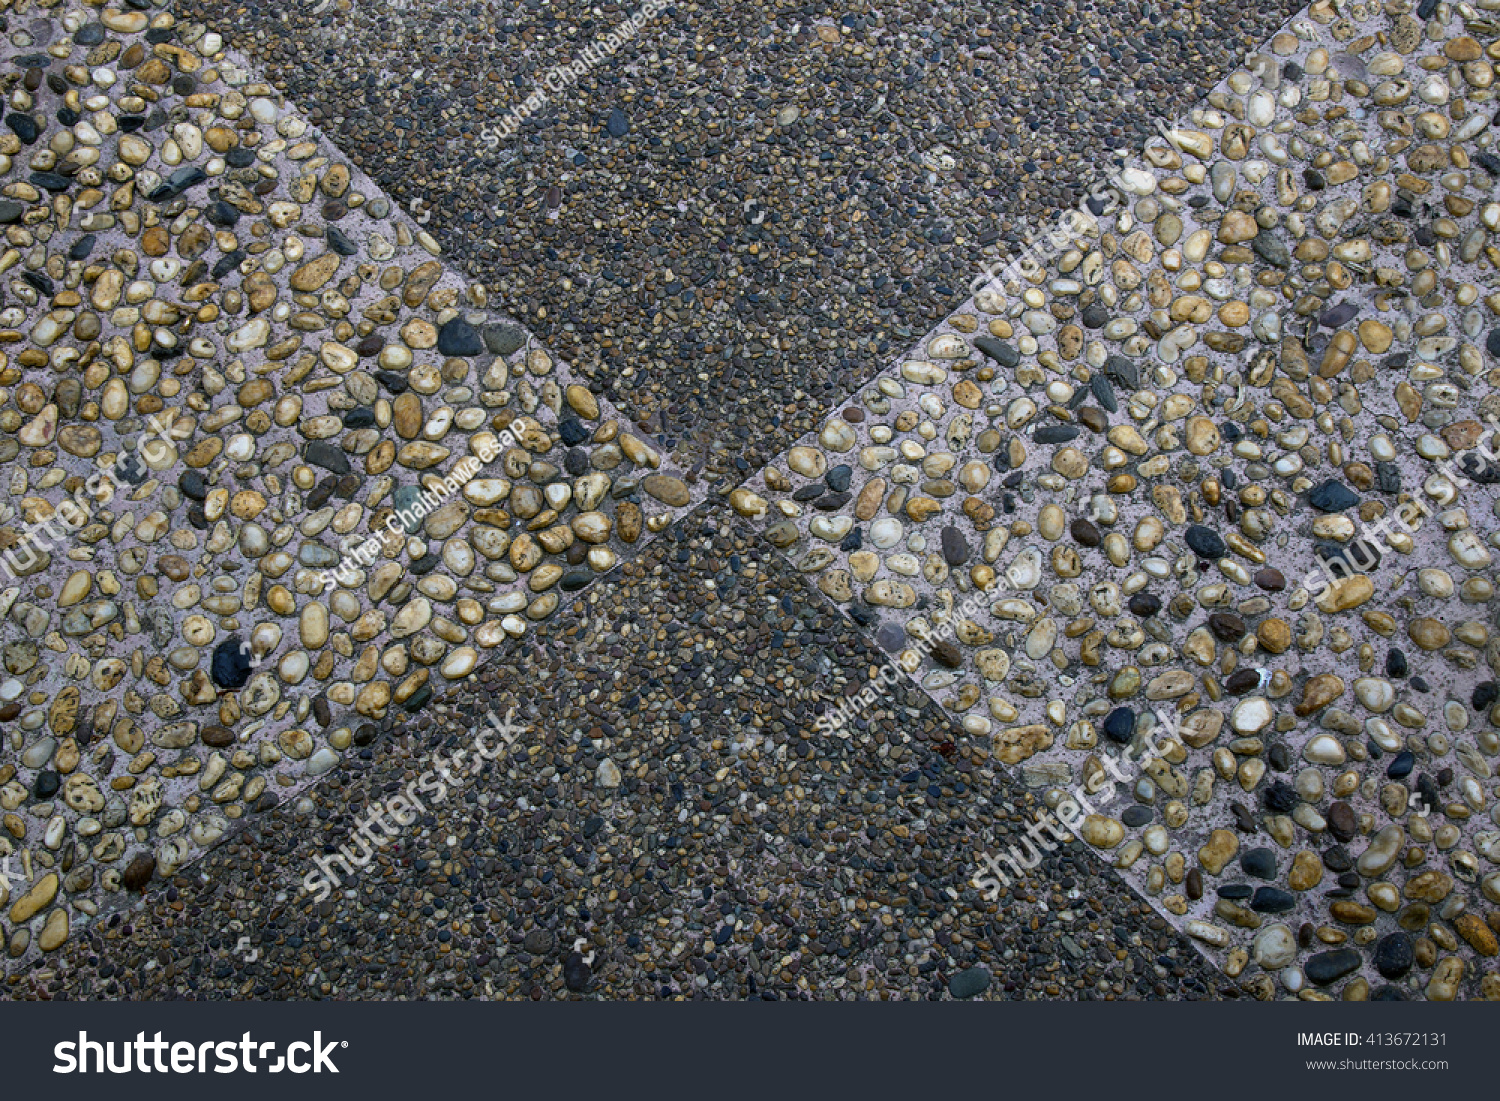 Washed Sand Terrazzo Floor Design Stock Image Download Now